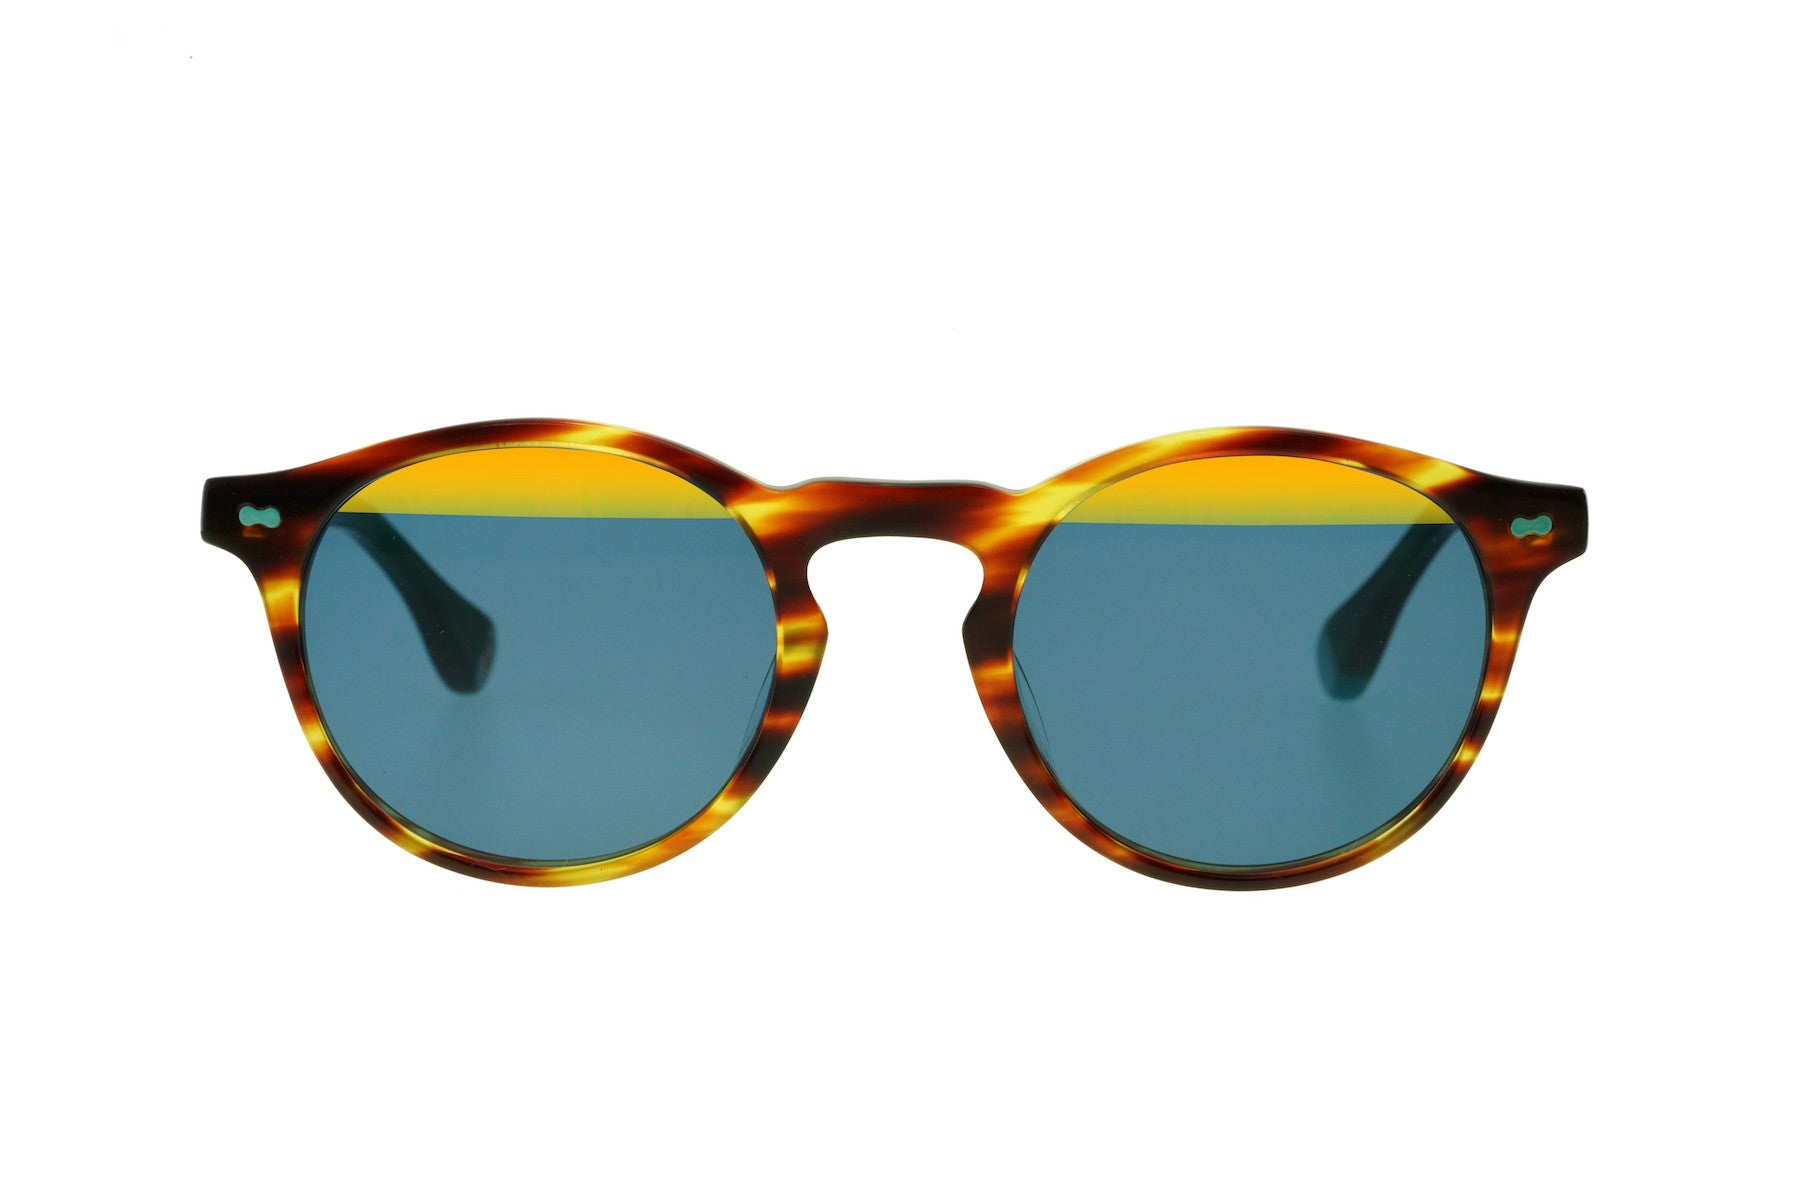 Grand 262 - Peppertint - Designer sunglasses